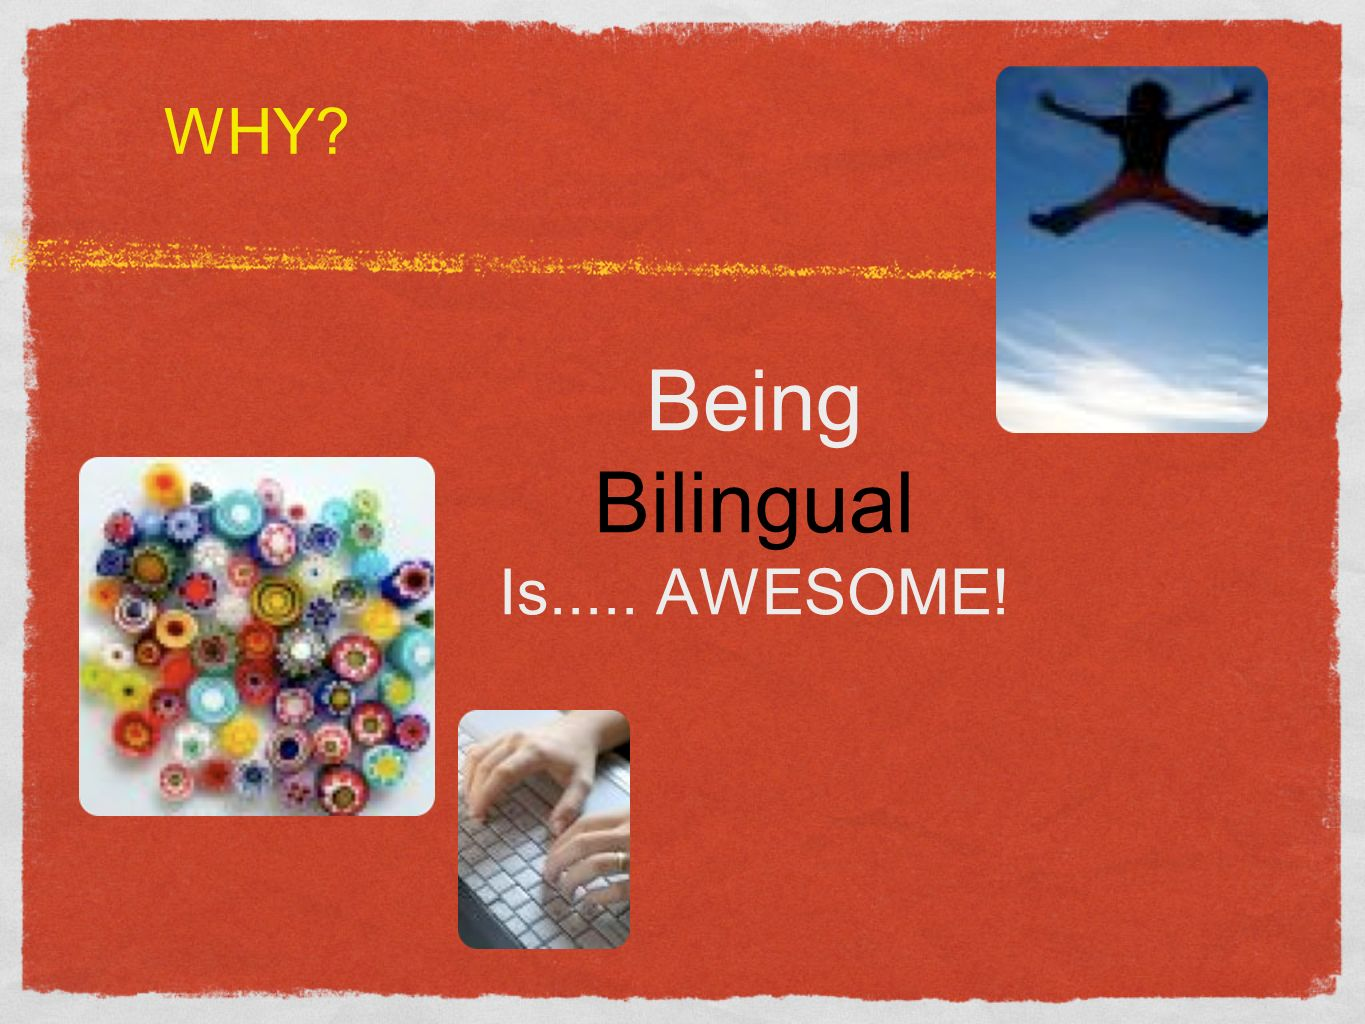 Being Bilingual Is..... AWESOME! WHY